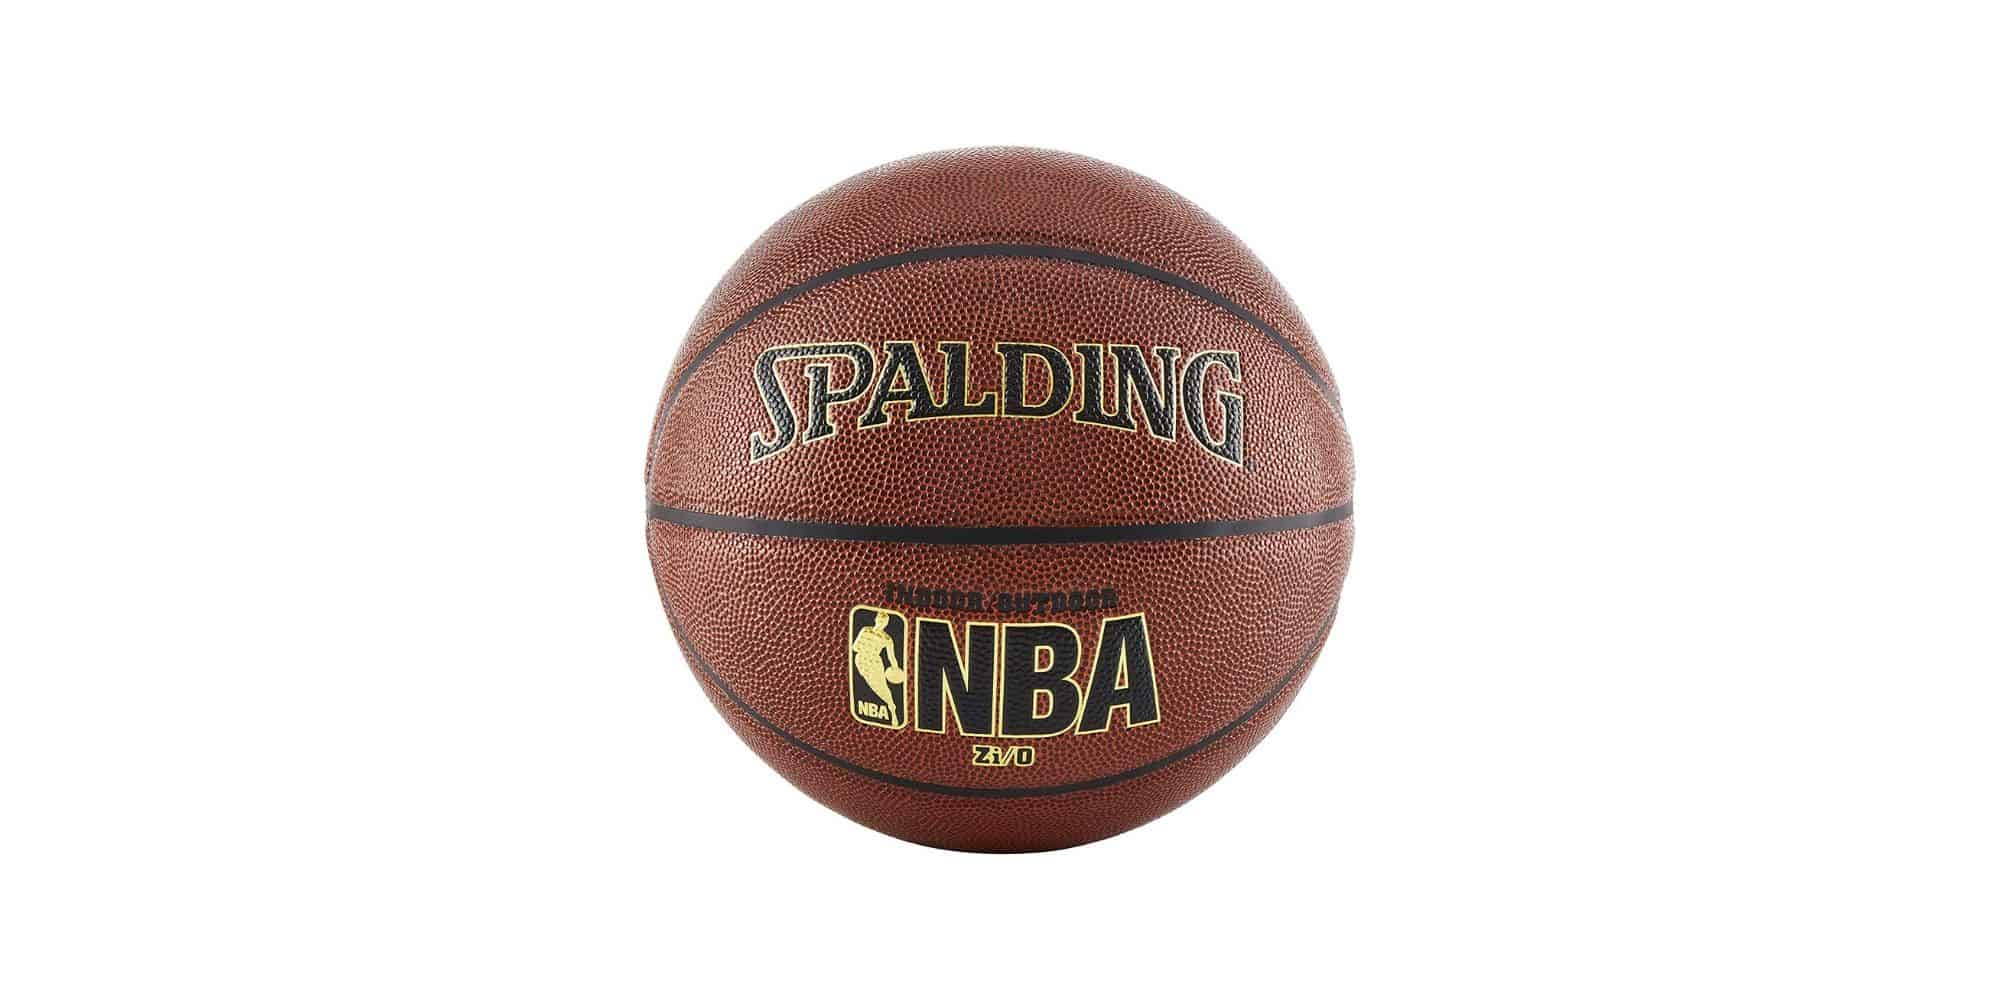 featured image for spalding zi/o basketball review